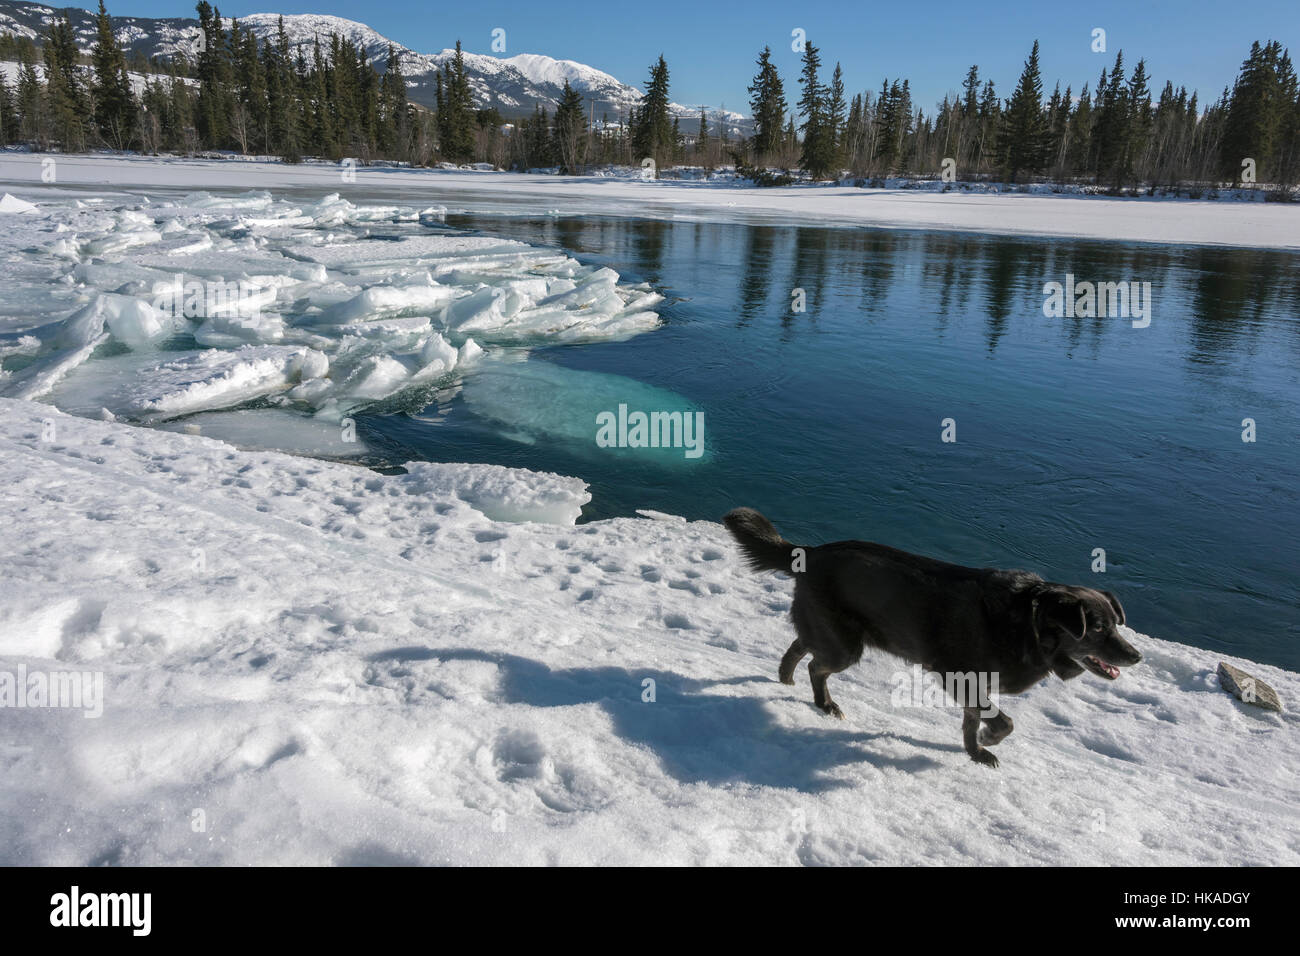 Early ice breakup with dog, shadow and reflections, Yukon River, Whitehorse, Yukon Territory - Stock Image